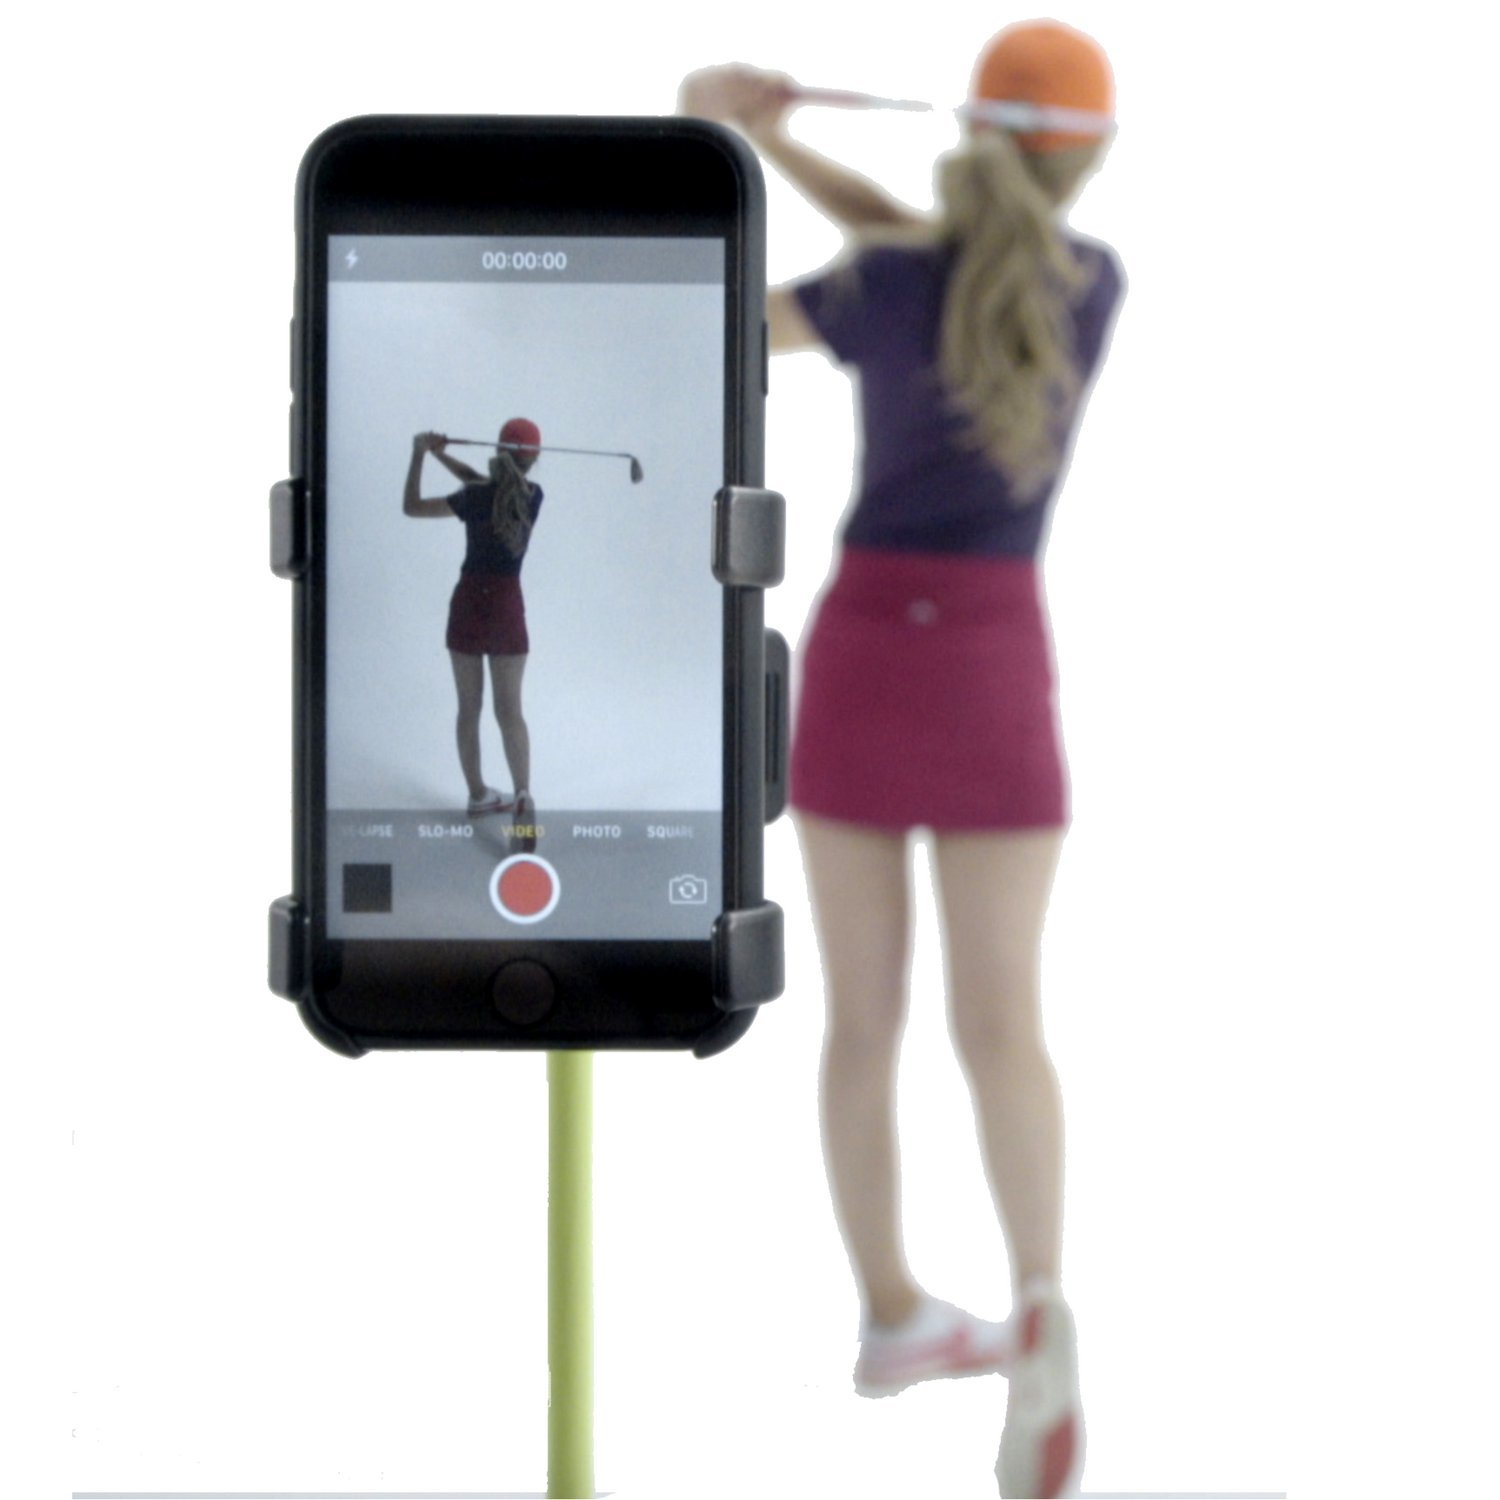 SelfieGolf Record Golf Swing - Cell Phone Clip Holder and Training Aid - Golf Accessories | Winner of The PGA Best Product | Works with Any Smart Phone, Quick Set Up (Blue/White)